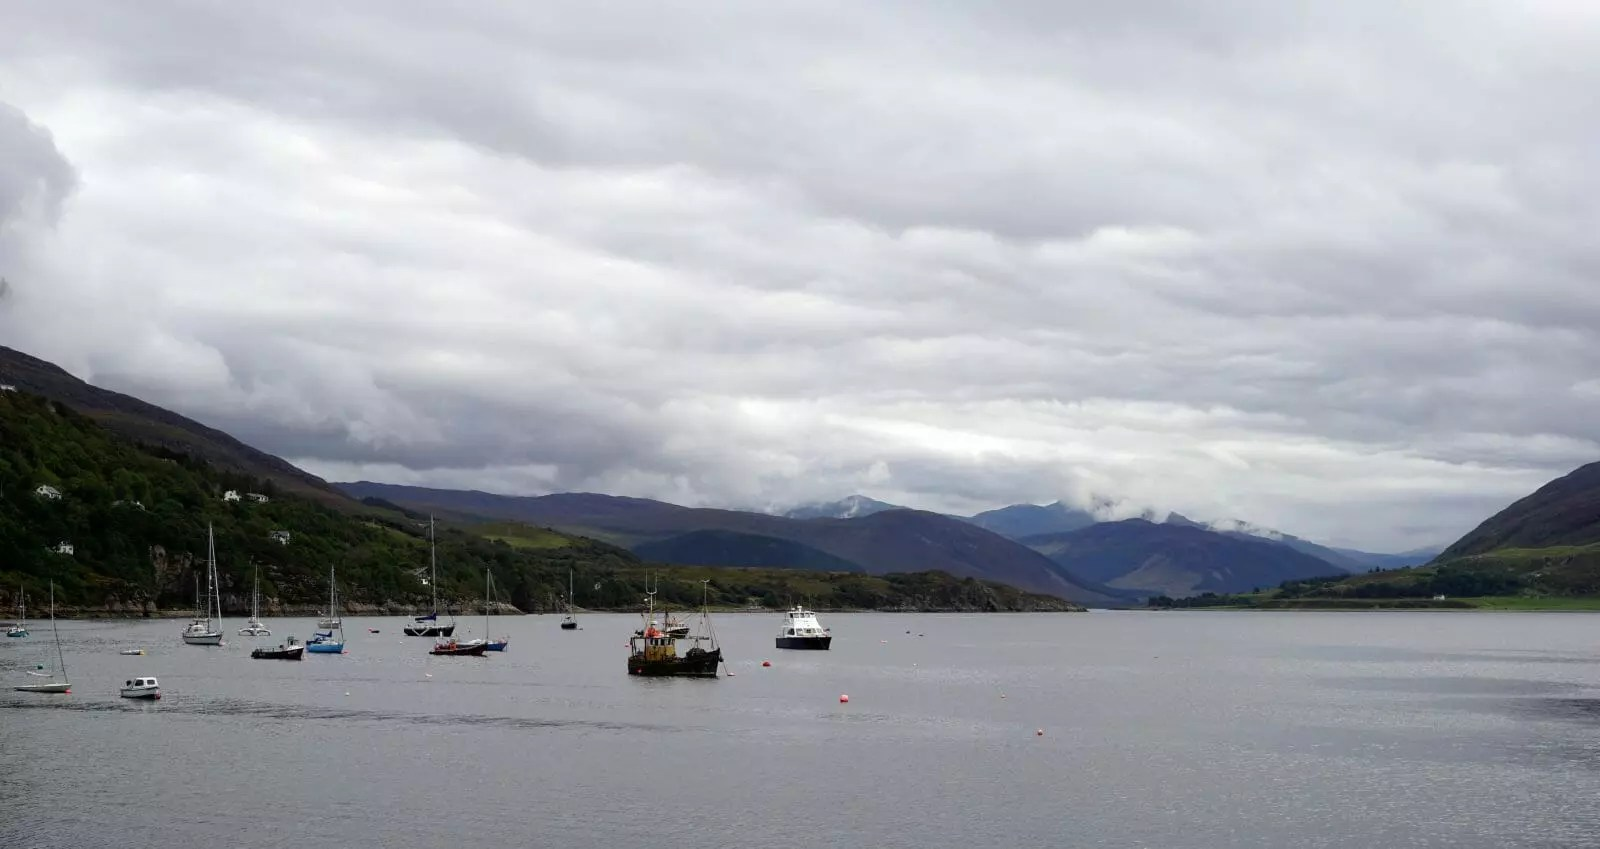 A view of Loch Broom, seen from Ullapool harbour